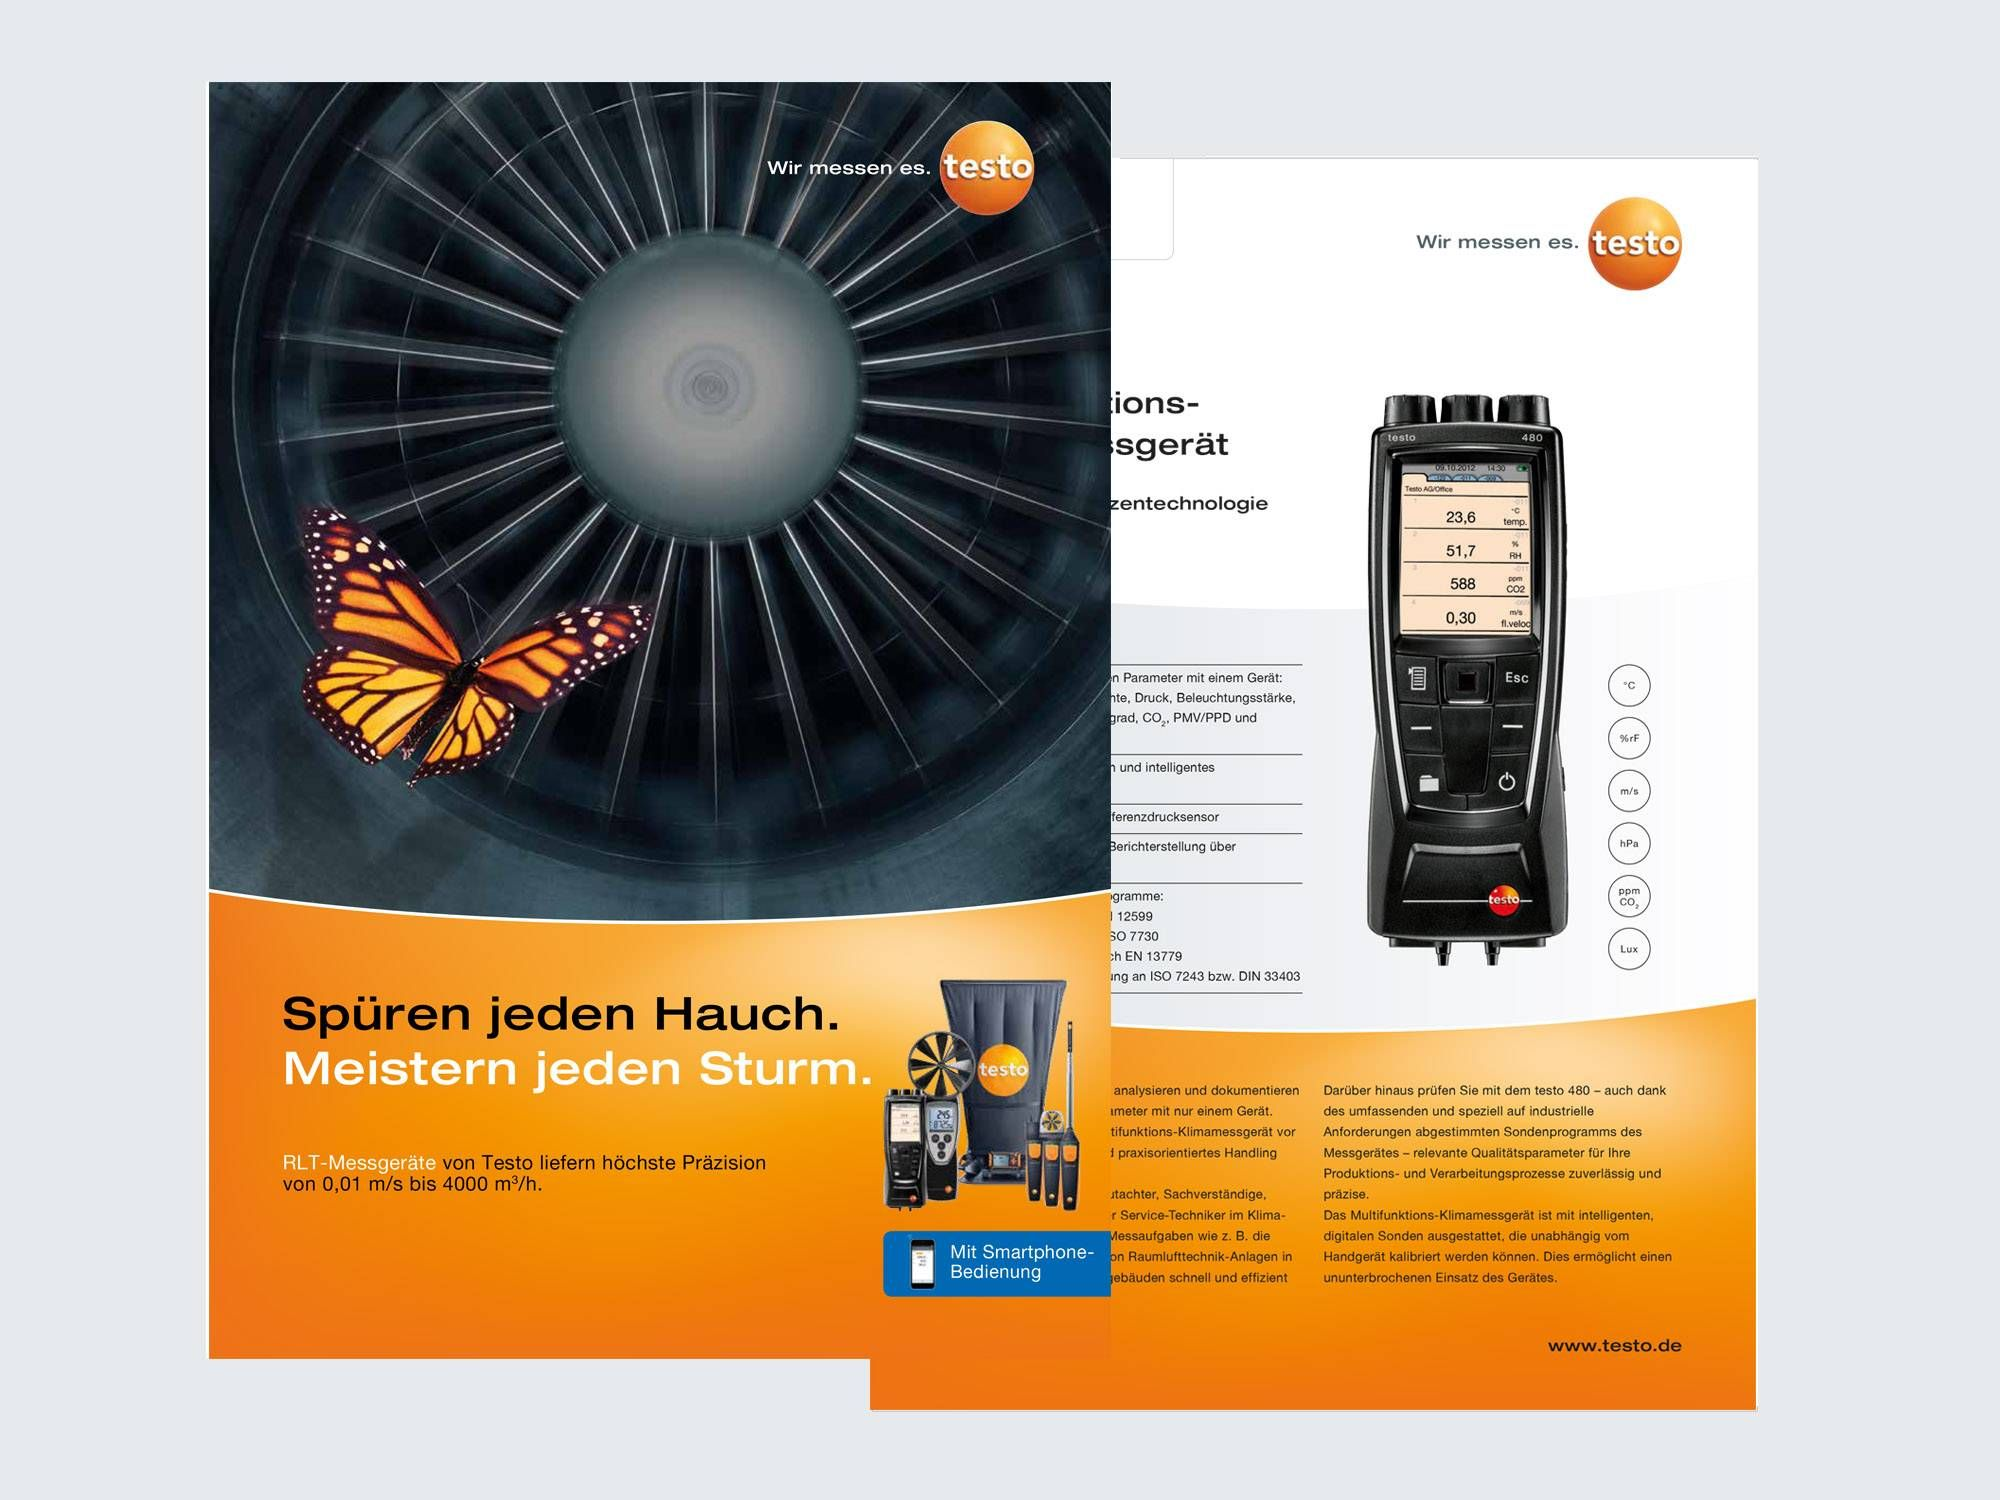 infopaket-messe-testo-480-rlt-download-vorschau.jpg